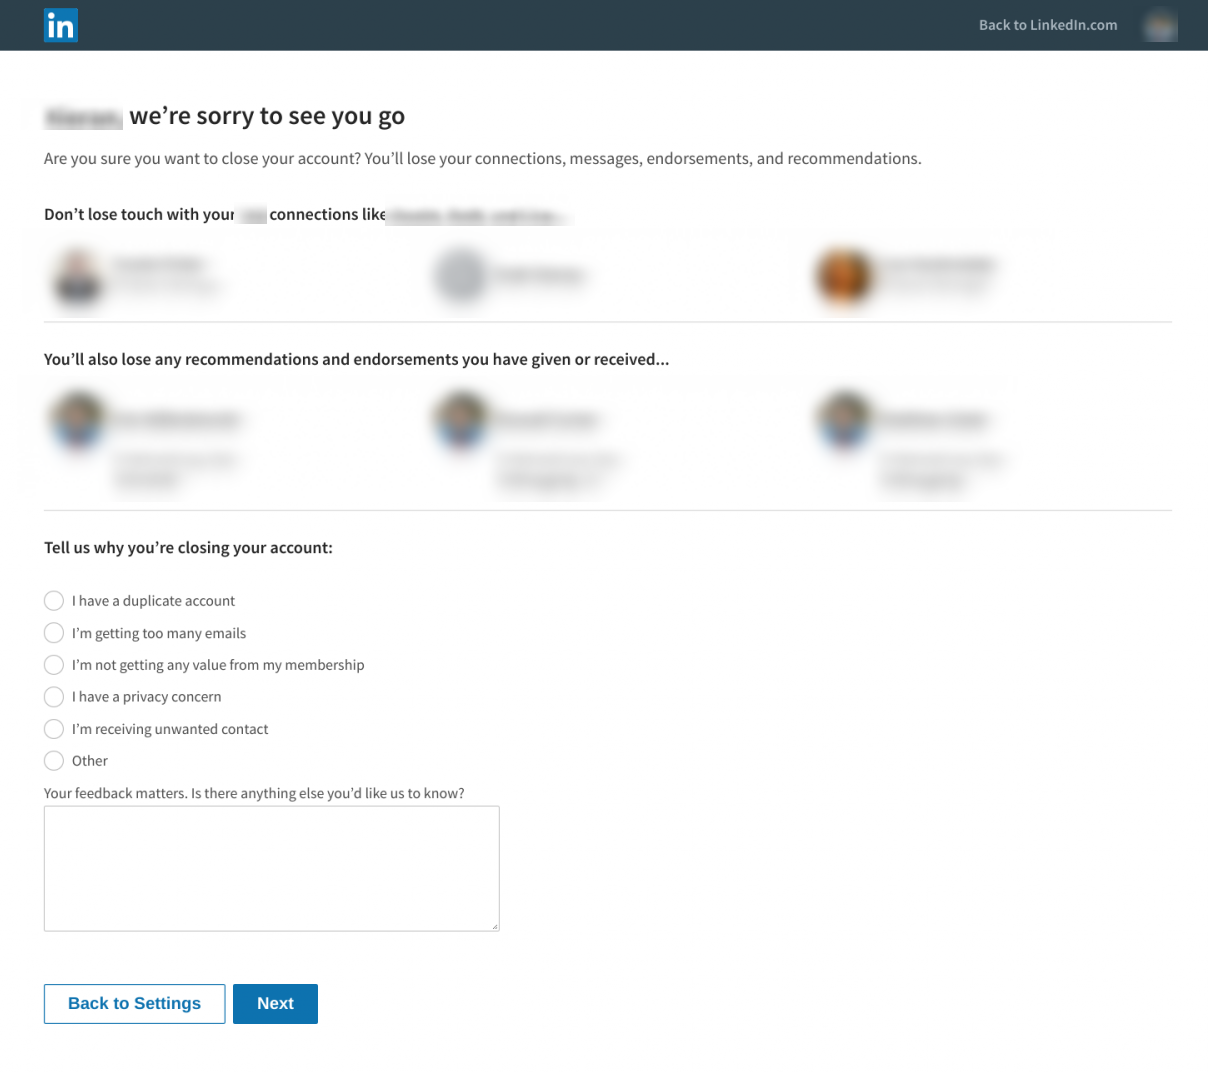 "This is the screen that users see when they cancel their LinkedIn account. It says ""wer're sorry to see you go"" and reminds the user that they will lose their LinkedIn connections and profile."